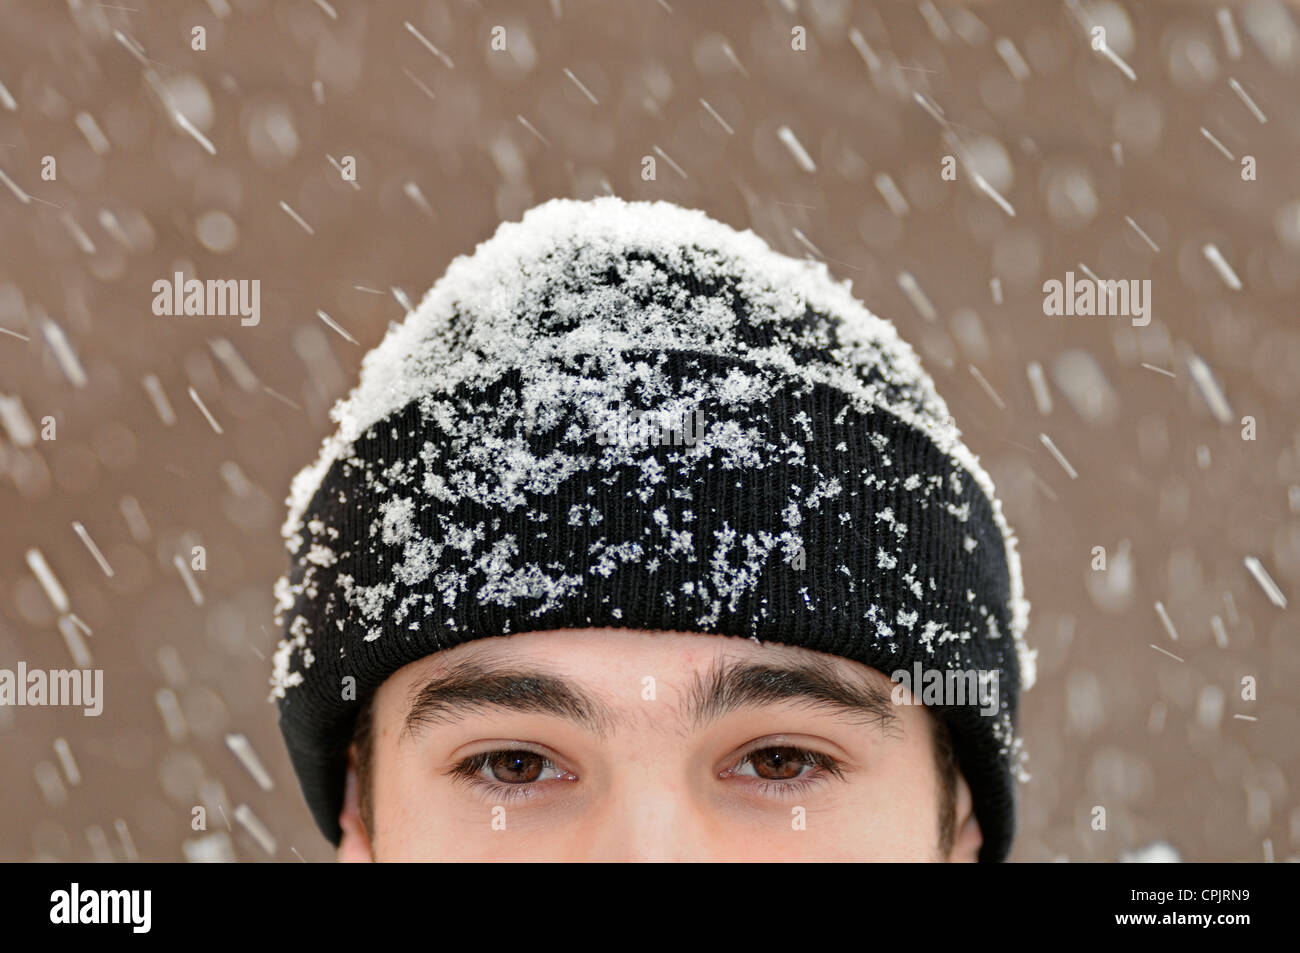 Man Outside in Snow, Close Up. - Stock Image